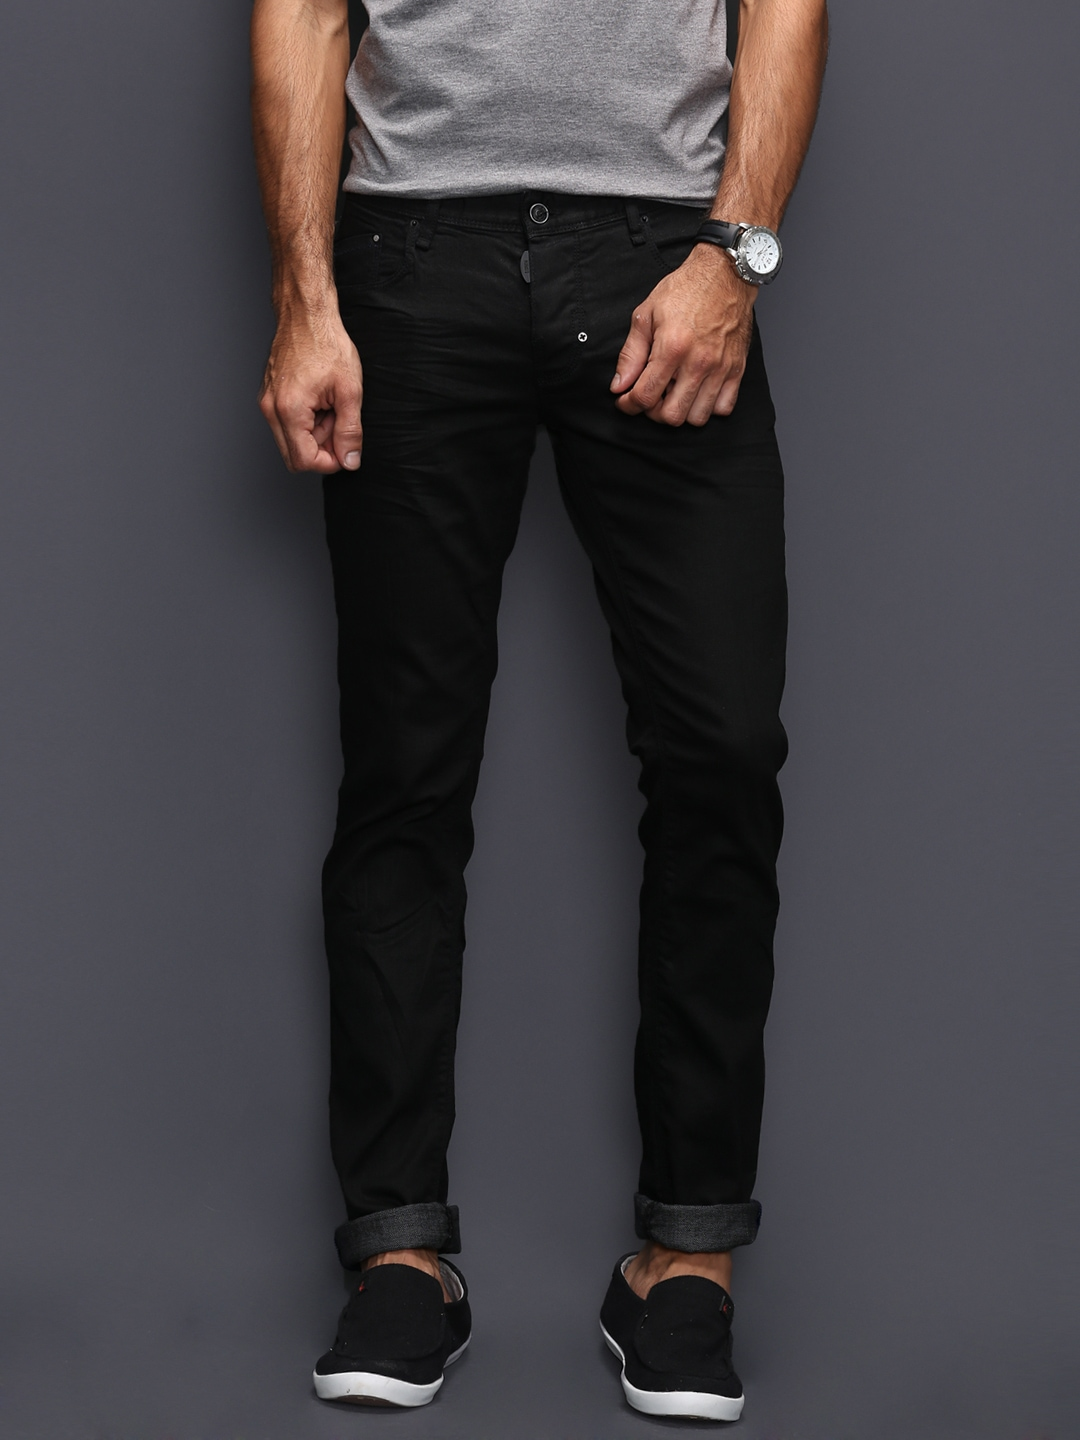 Mens Slim Fit Black Jeans - Jeans Am